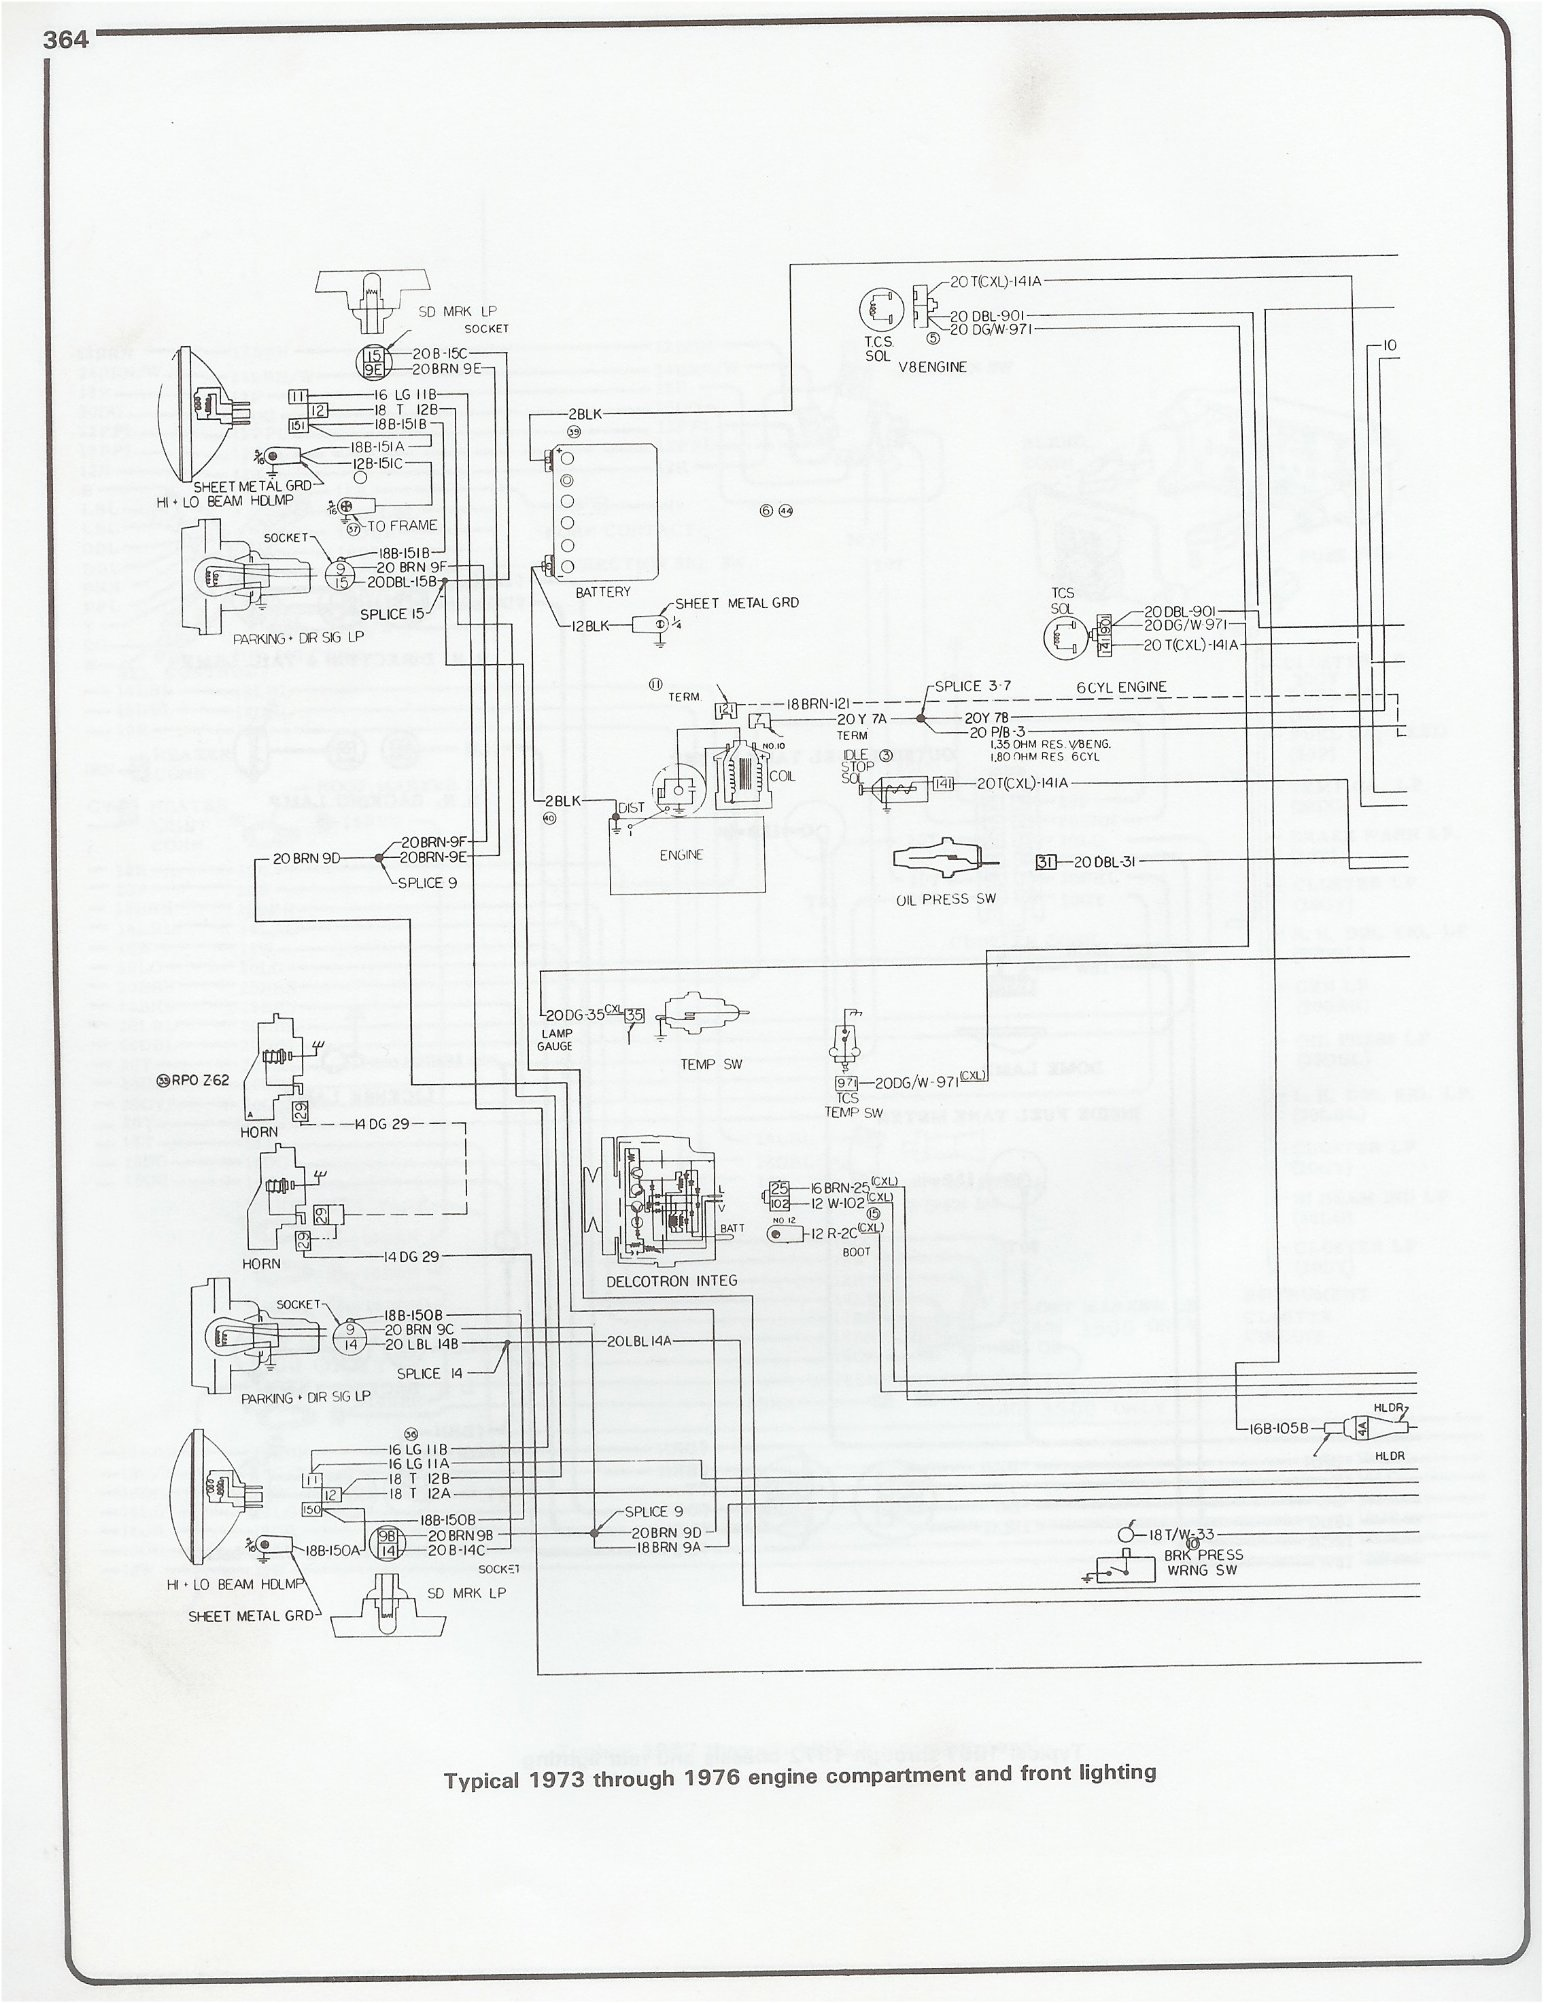 Complete 73-87 Wiring Diagrams on dodge car, dodge fuel pump diagram, lexus is250 parts diagram, dodge fuse box diagram problem, dodge transmission diagram, dodge ram stereo wiring colors, dodge stereo wiring color codes, dodge stereo wiring guide, 2007 dodge charger fuse diagram, dodge caravan trailer wiring, dodge suspension diagram, 2003 dodge ram radio pinout diagram, dodge wire harness diagram, dodge hydraulic clutch line, dodge ram speaker wiring, dodge neon stereo wiring, dodge starter diagram,